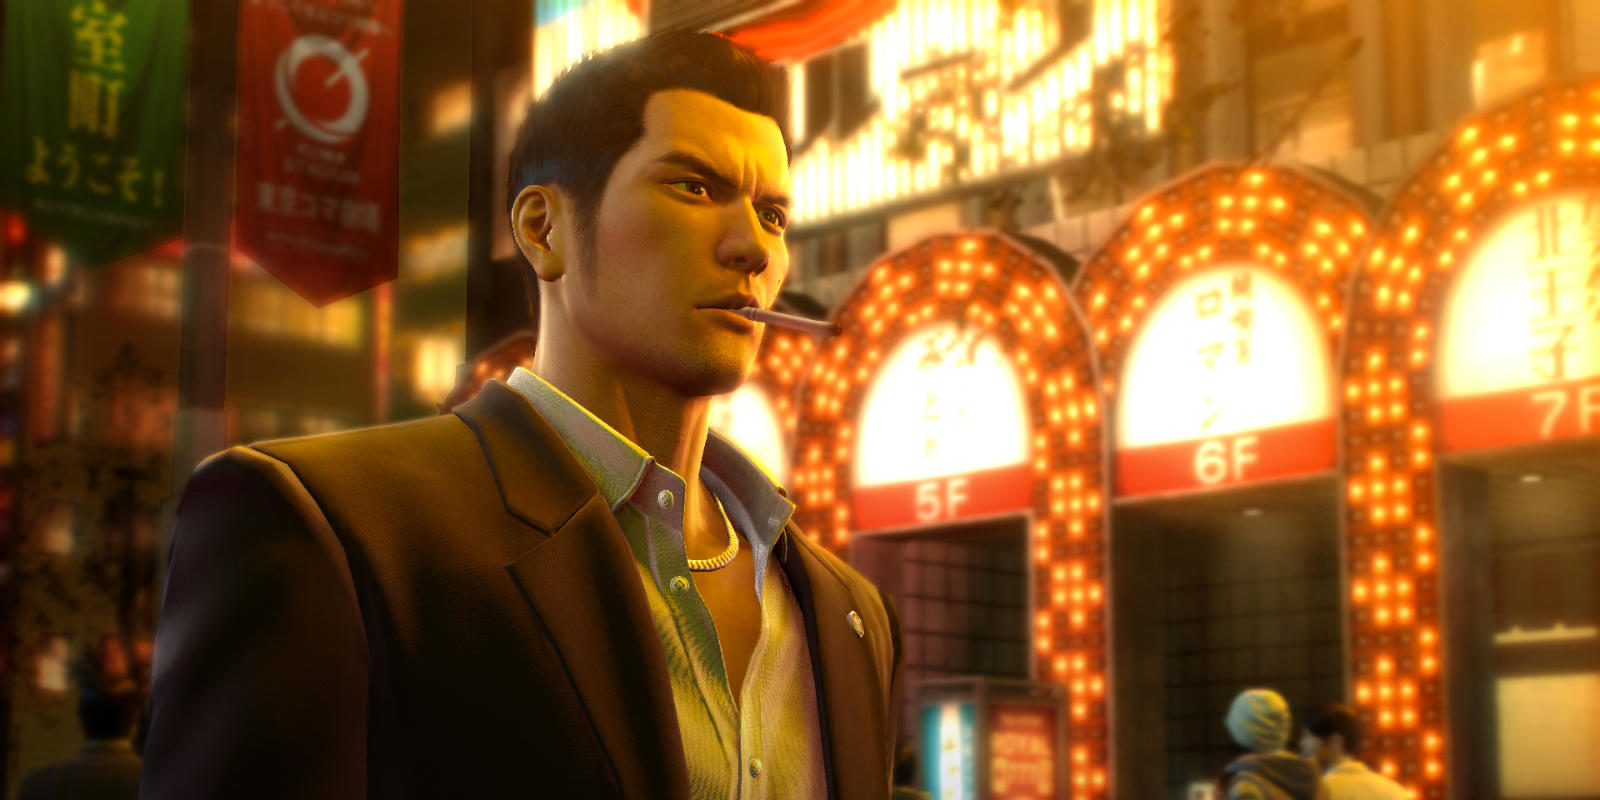 A young Yakuza outcast, Kazuma Kiryu, smokes a cigarette in front of a theater in the red light district of Kamurocho.